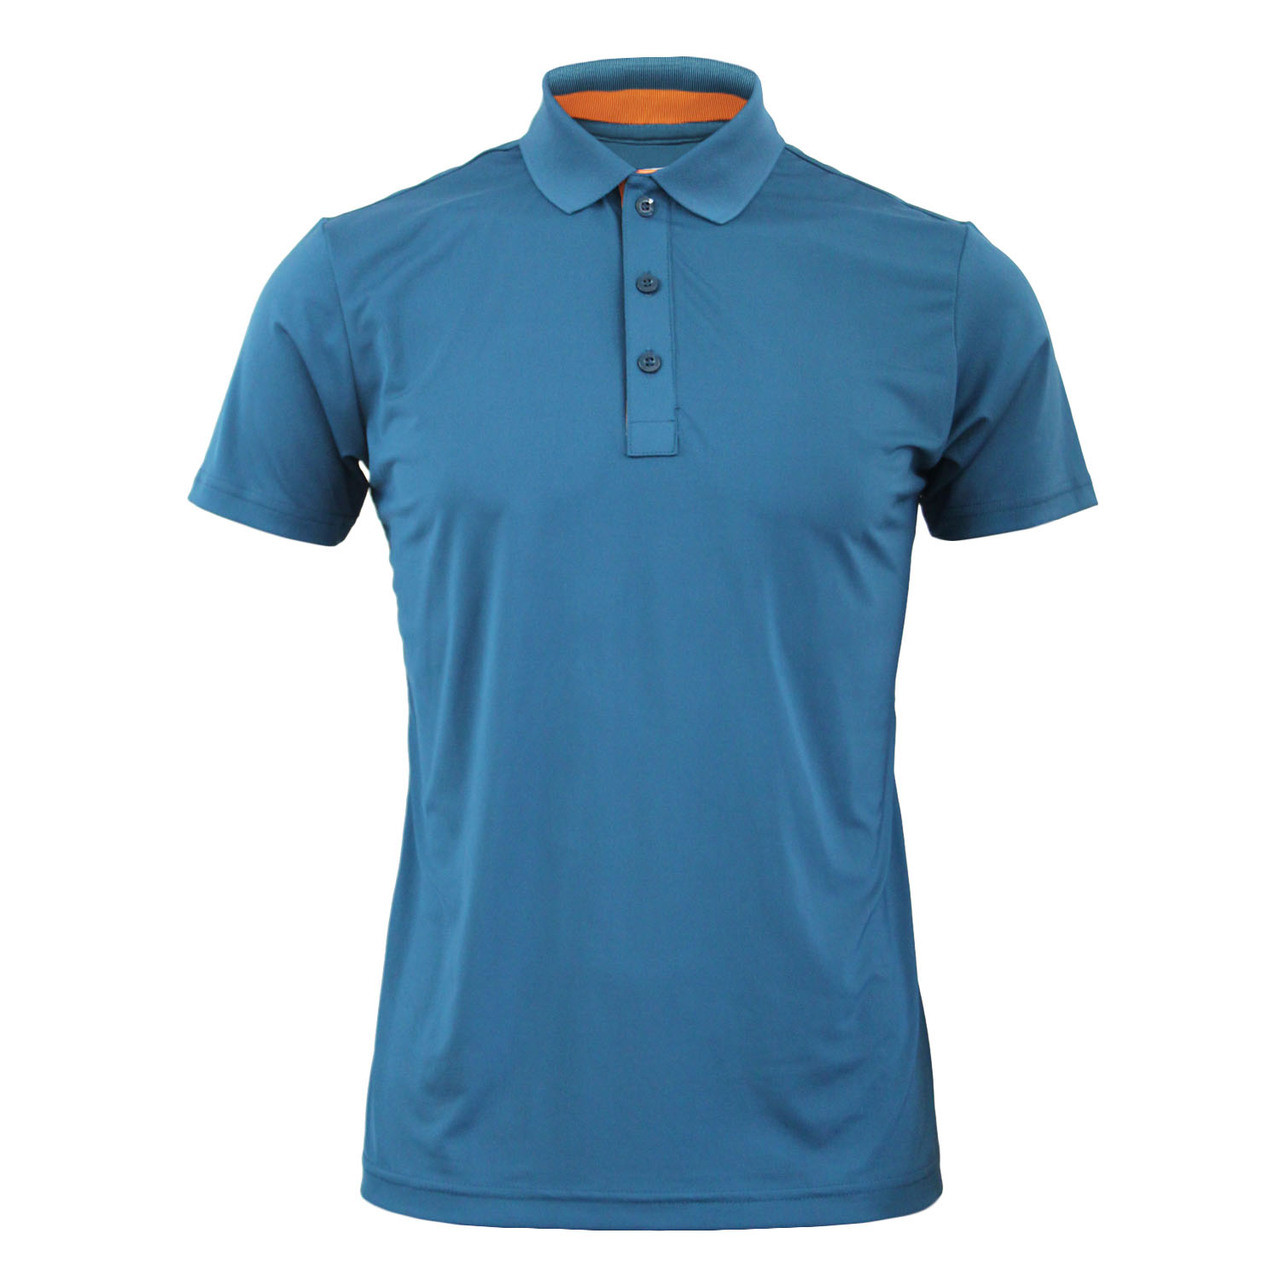 This Spandex Polo T Shirt Indiblue